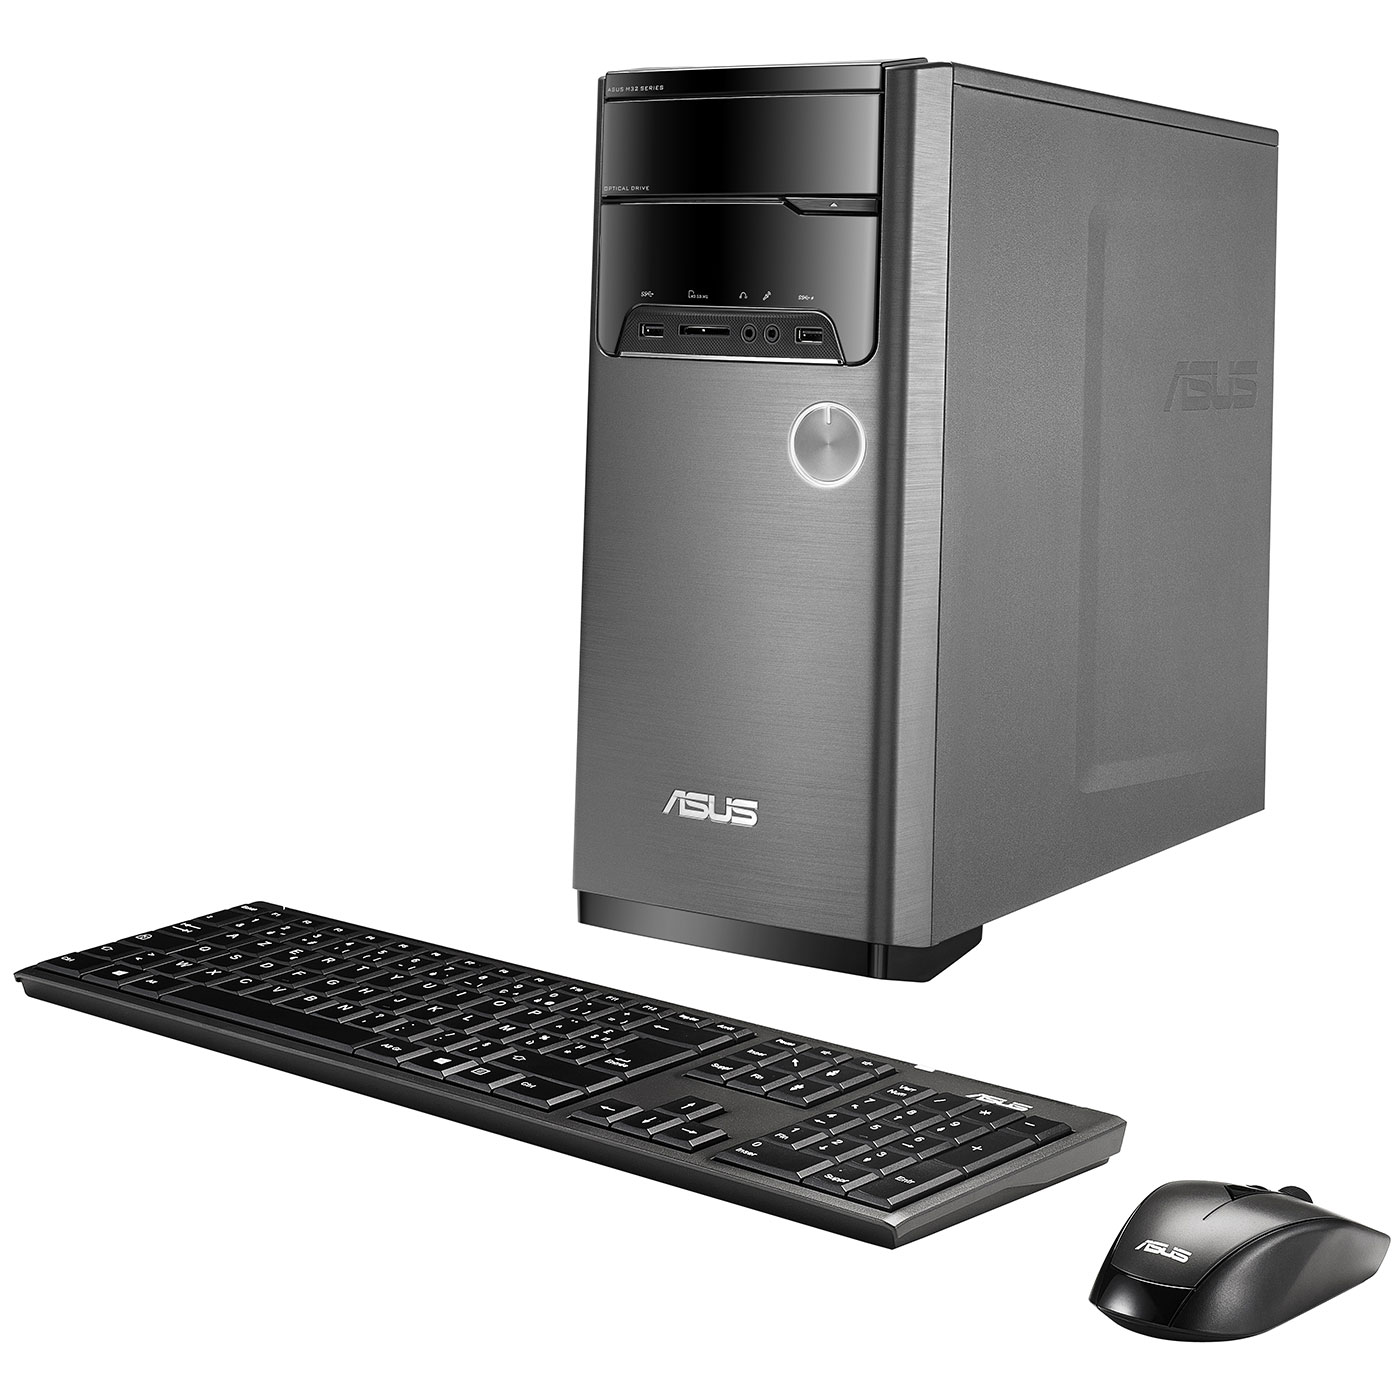 asus m32ad fr032s pc de bureau asus sur ldlc. Black Bedroom Furniture Sets. Home Design Ideas